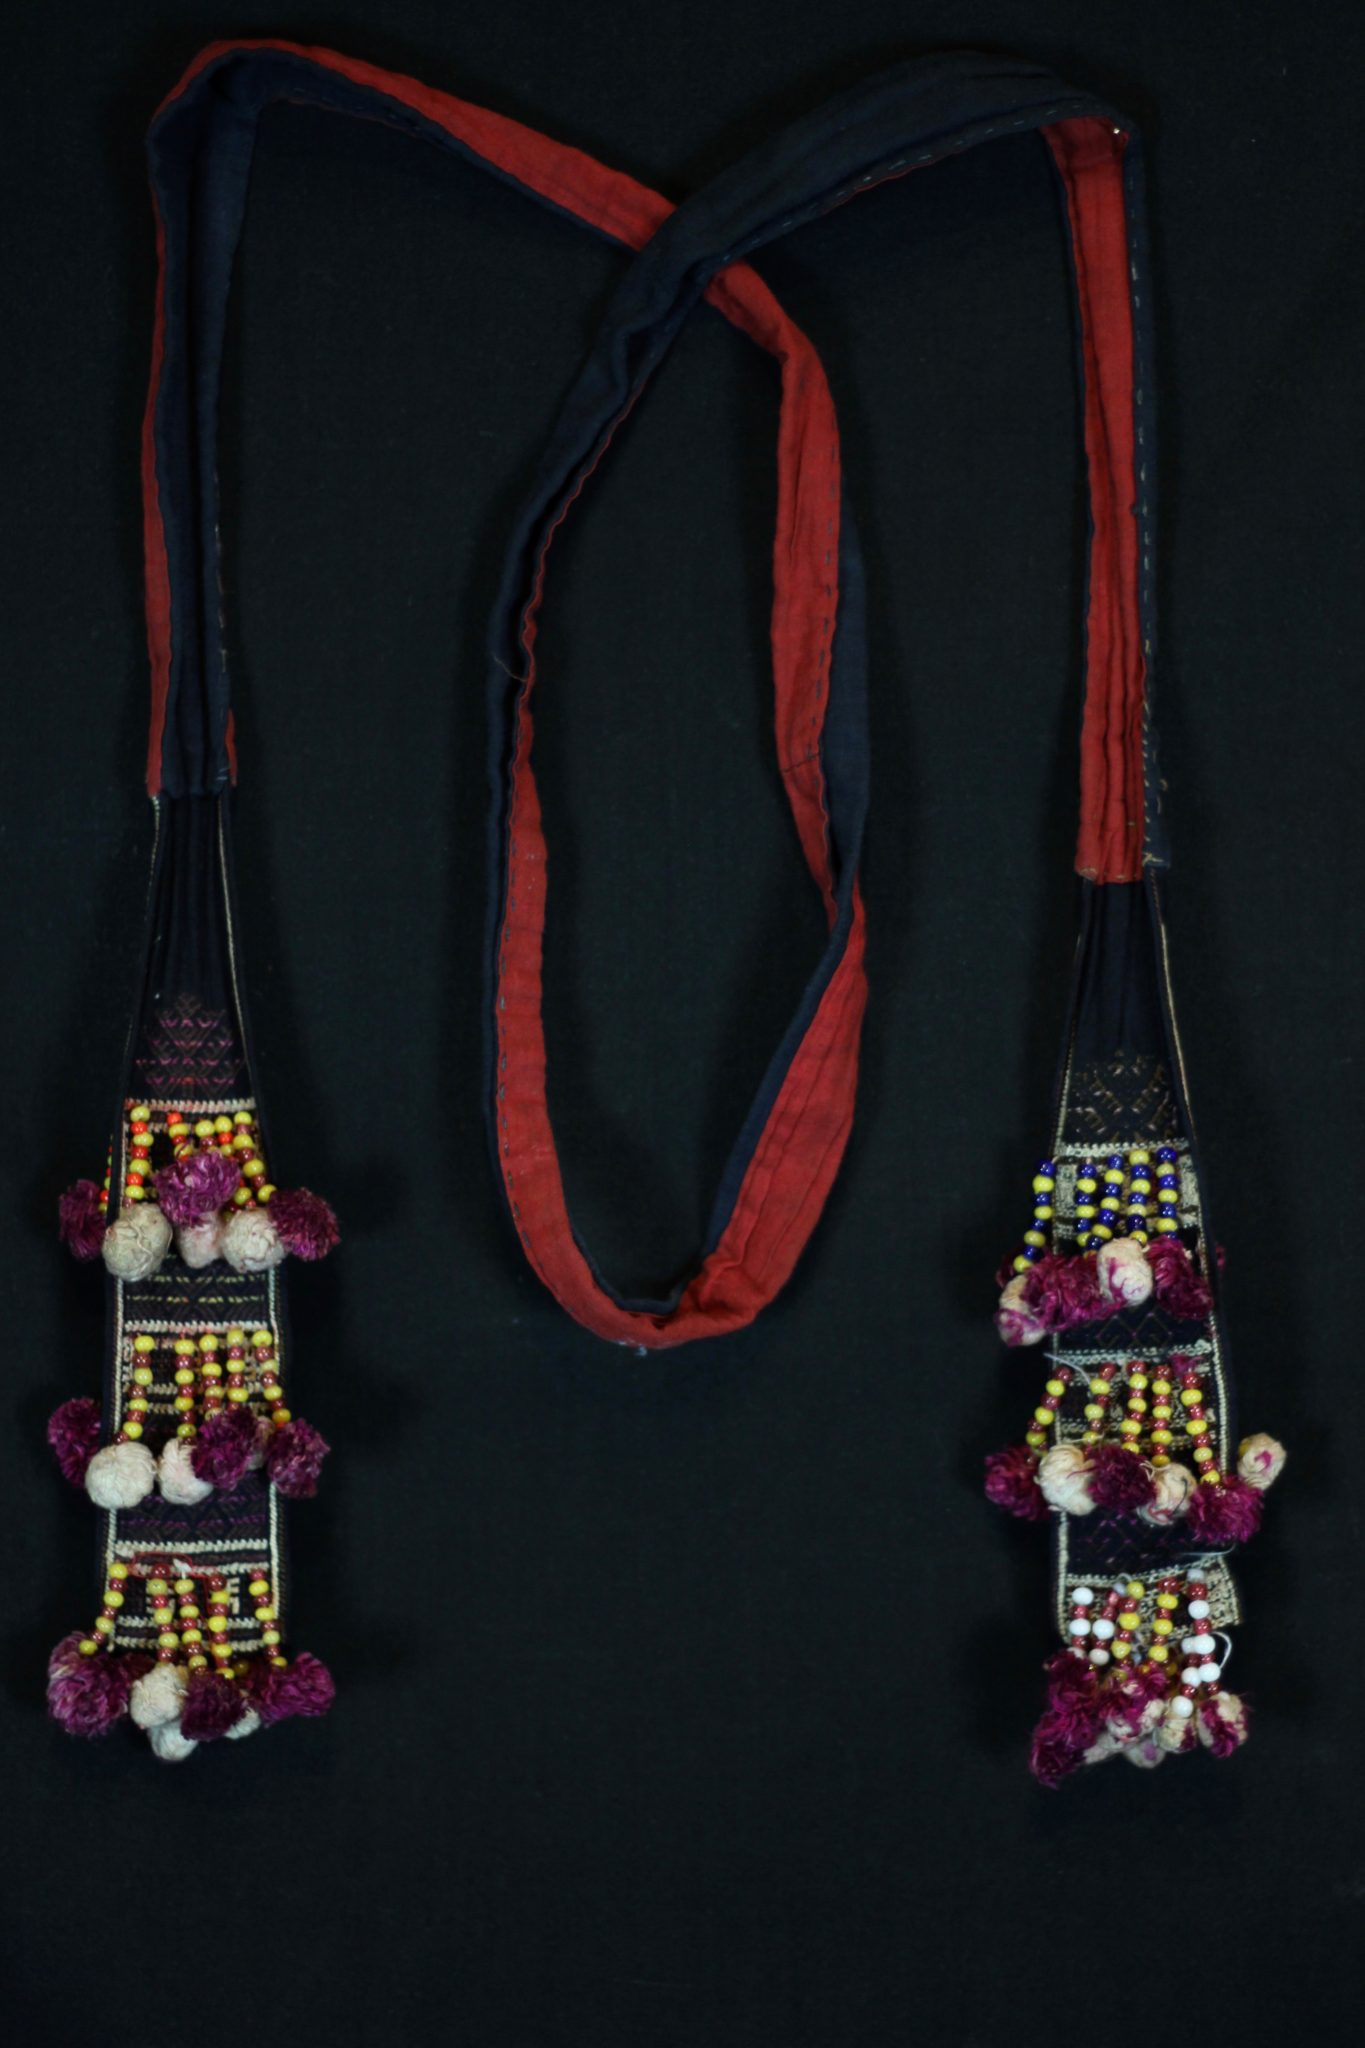 """Shaman Costume Belt, Vietnam, Mid 20th c, Cotton, embroidered with silk, glass beads, Part of shaman's costume. 69 ½"""" x 3"""" x 1"""", $180"""